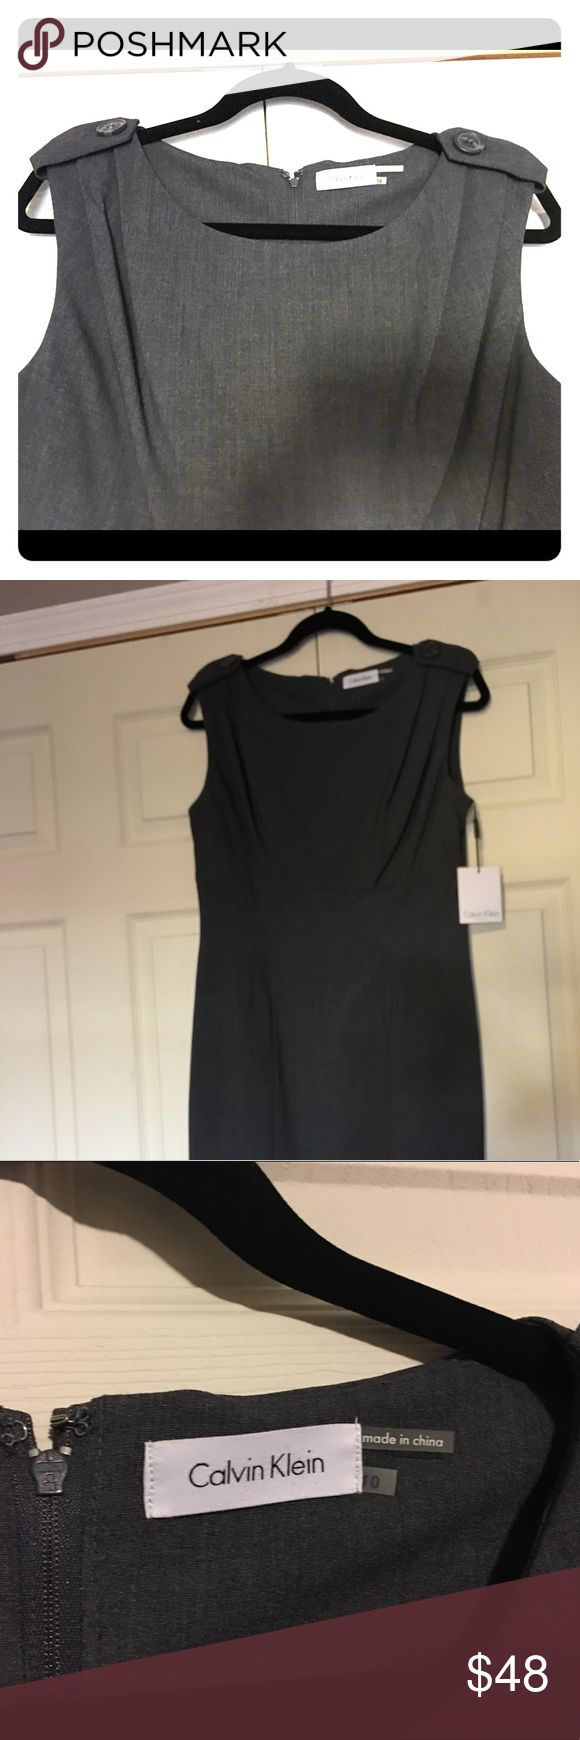 Calvin Klein NWT charcoal dress sz 10 Gorgeous Calvin Klein charcoal dress  NWT  Size 10  Classic pleats and button detail at shoulders.  🚭 Comes from a smoke-free home  🍀 No rips, tears, or stains 🦋 Brand new with tags Calvin Klein Dresses